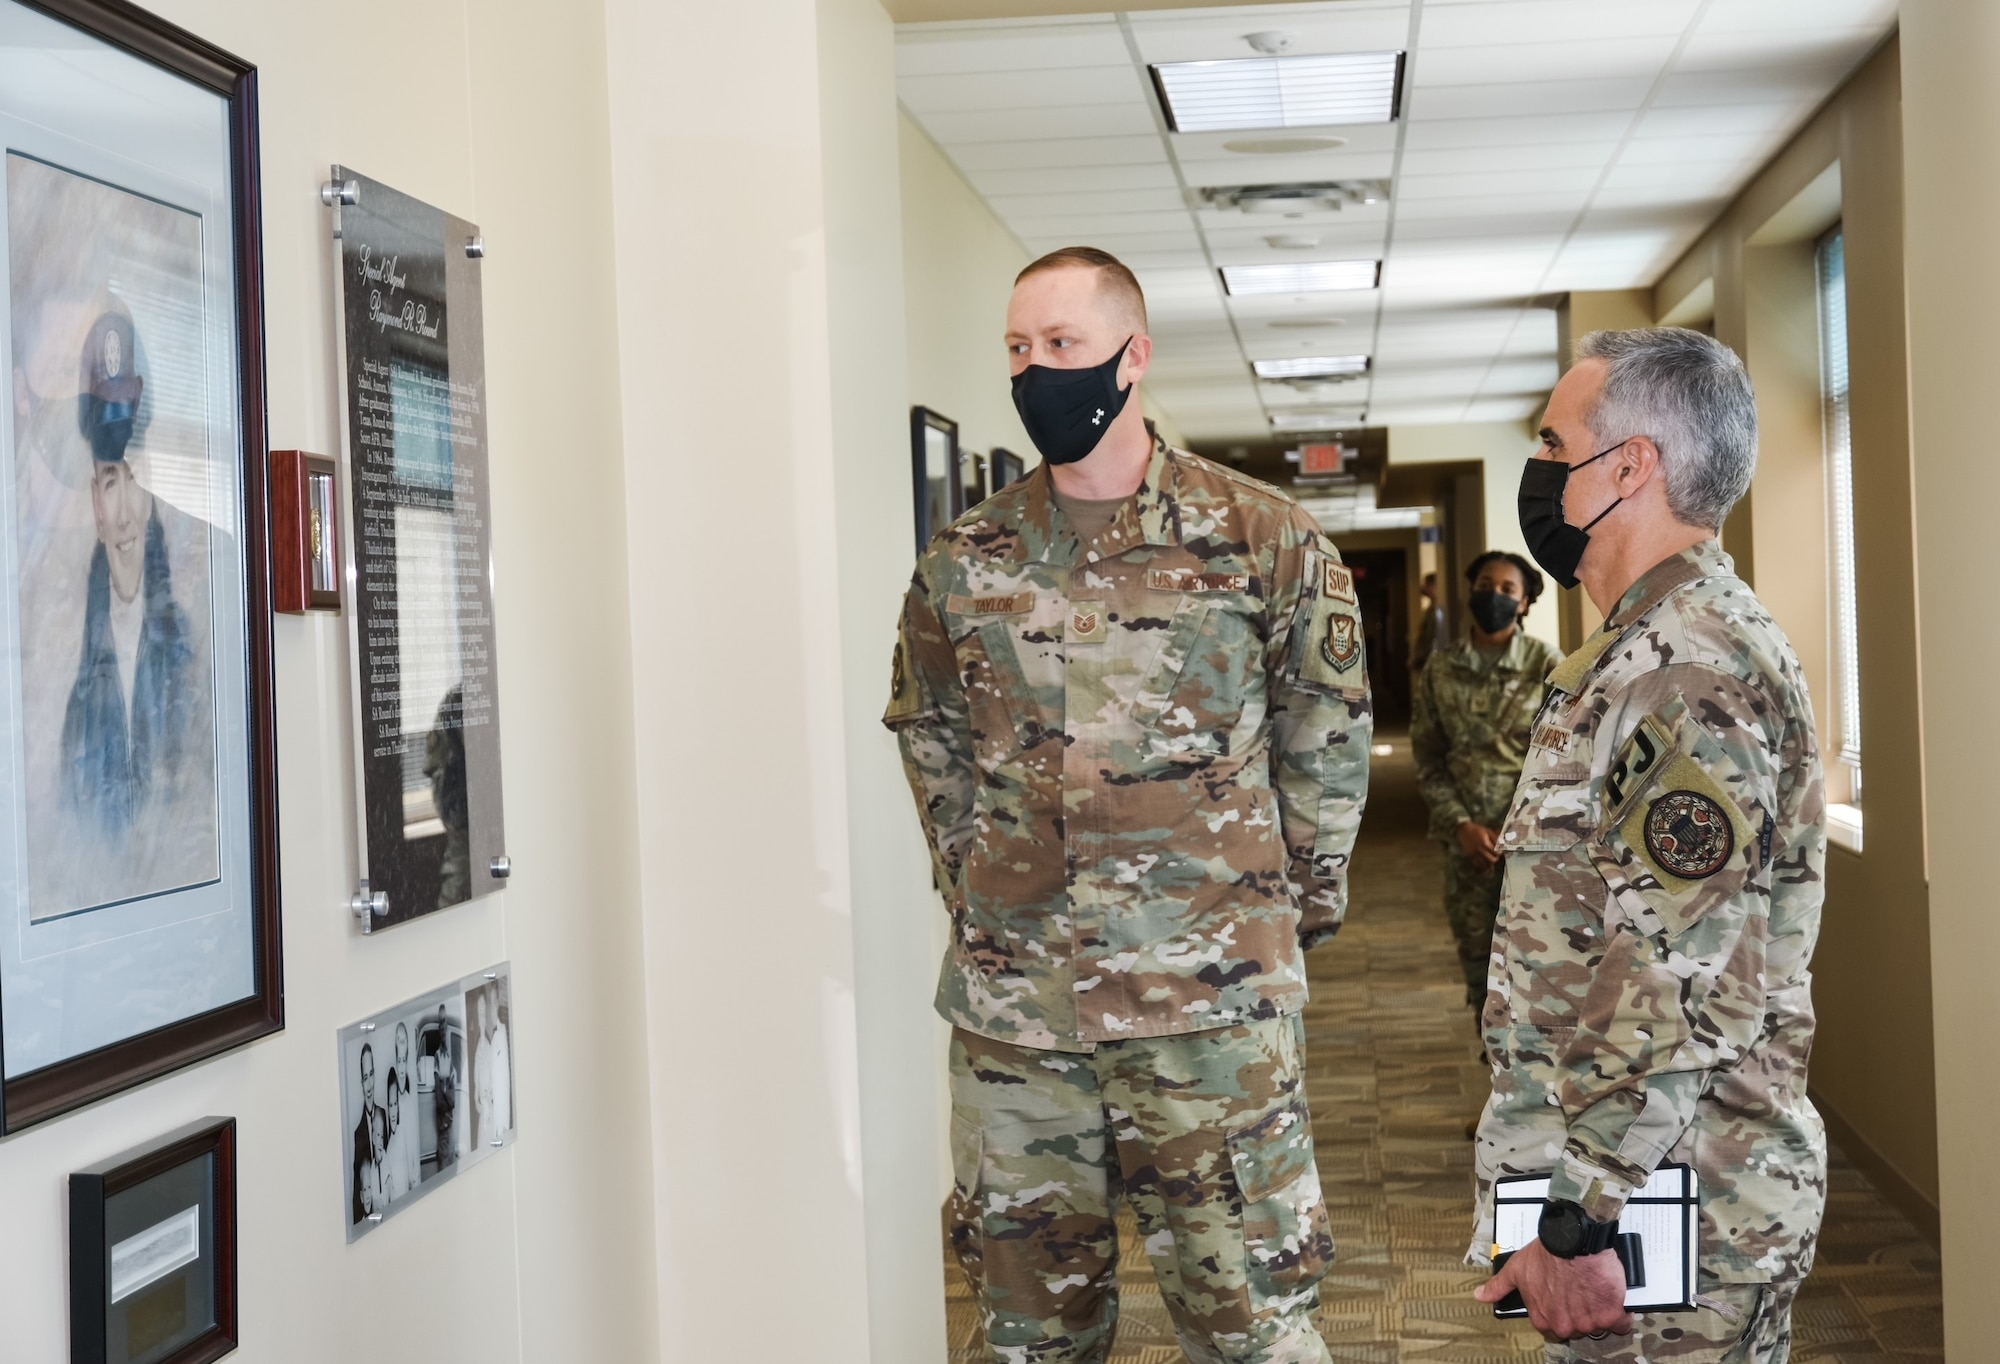 Tech. Sgt. William Taylor briefs the legacy of Office of Special Investigations Fallen Special Agent Raymond Round in the OSI Hall of Heroes, to SEAC Ramon Colon-Lopez, the Senior Enlisted Advisor to the Chairman of the Joint Chiefs of Staff, during his visit to OSI headquarters at Quantico, Va., Oct. 1, 2021. The SEAC visit supported OSI's observance of National Hispanic Heritage Month and this year's theme, Esperanza: A Celebration of Hispanic Heritage and Hope. (Photo by SA Christina Williams)